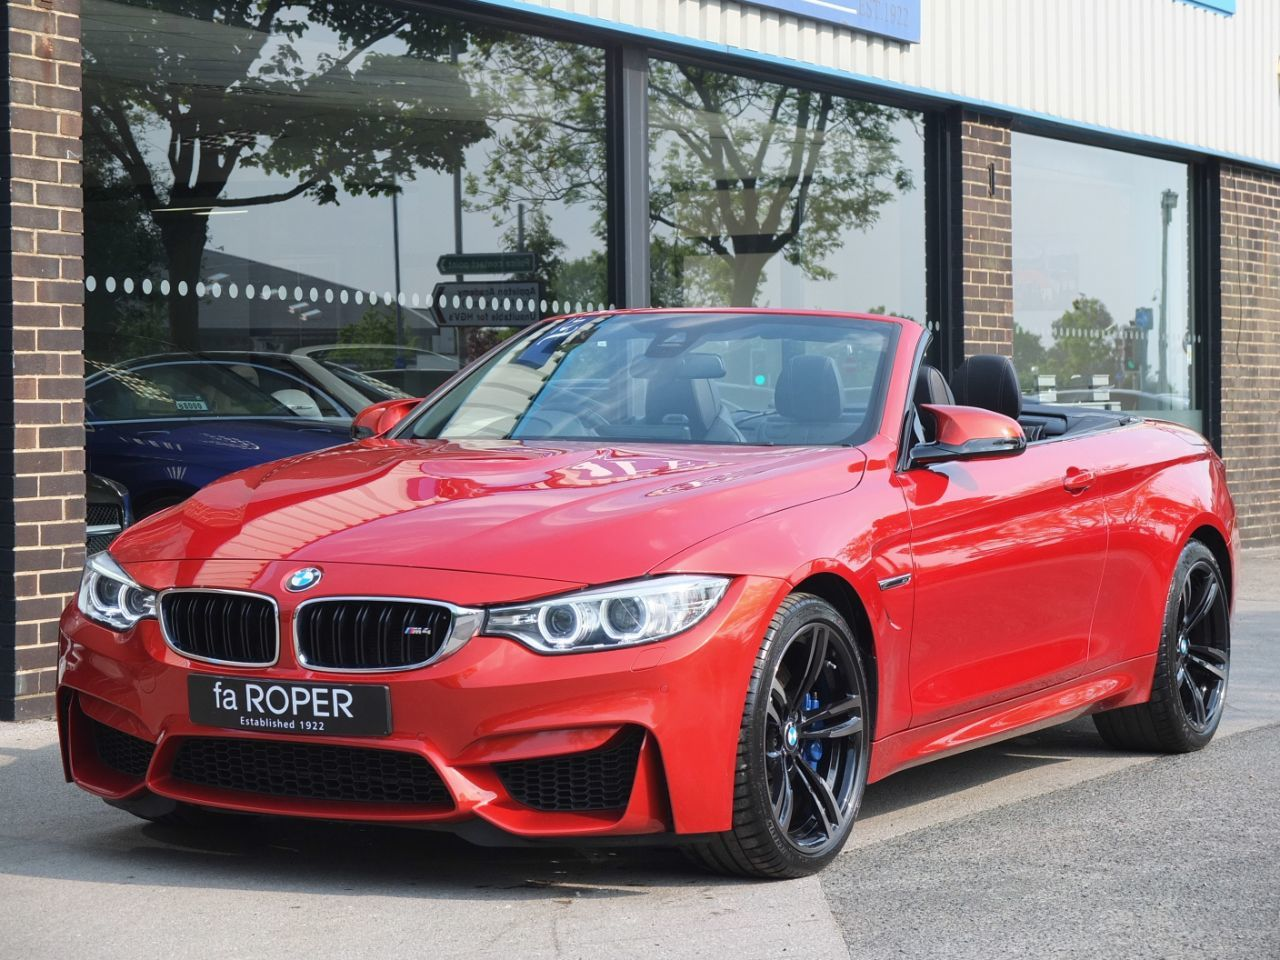 BMW M4 3.0 M4 Convertible DCT Convertible Petrol Sakhir Orange MetallicBMW M4 3.0 M4 Convertible DCT Convertible Petrol Sakhir Orange Metallic at fa Roper Ltd Bradford